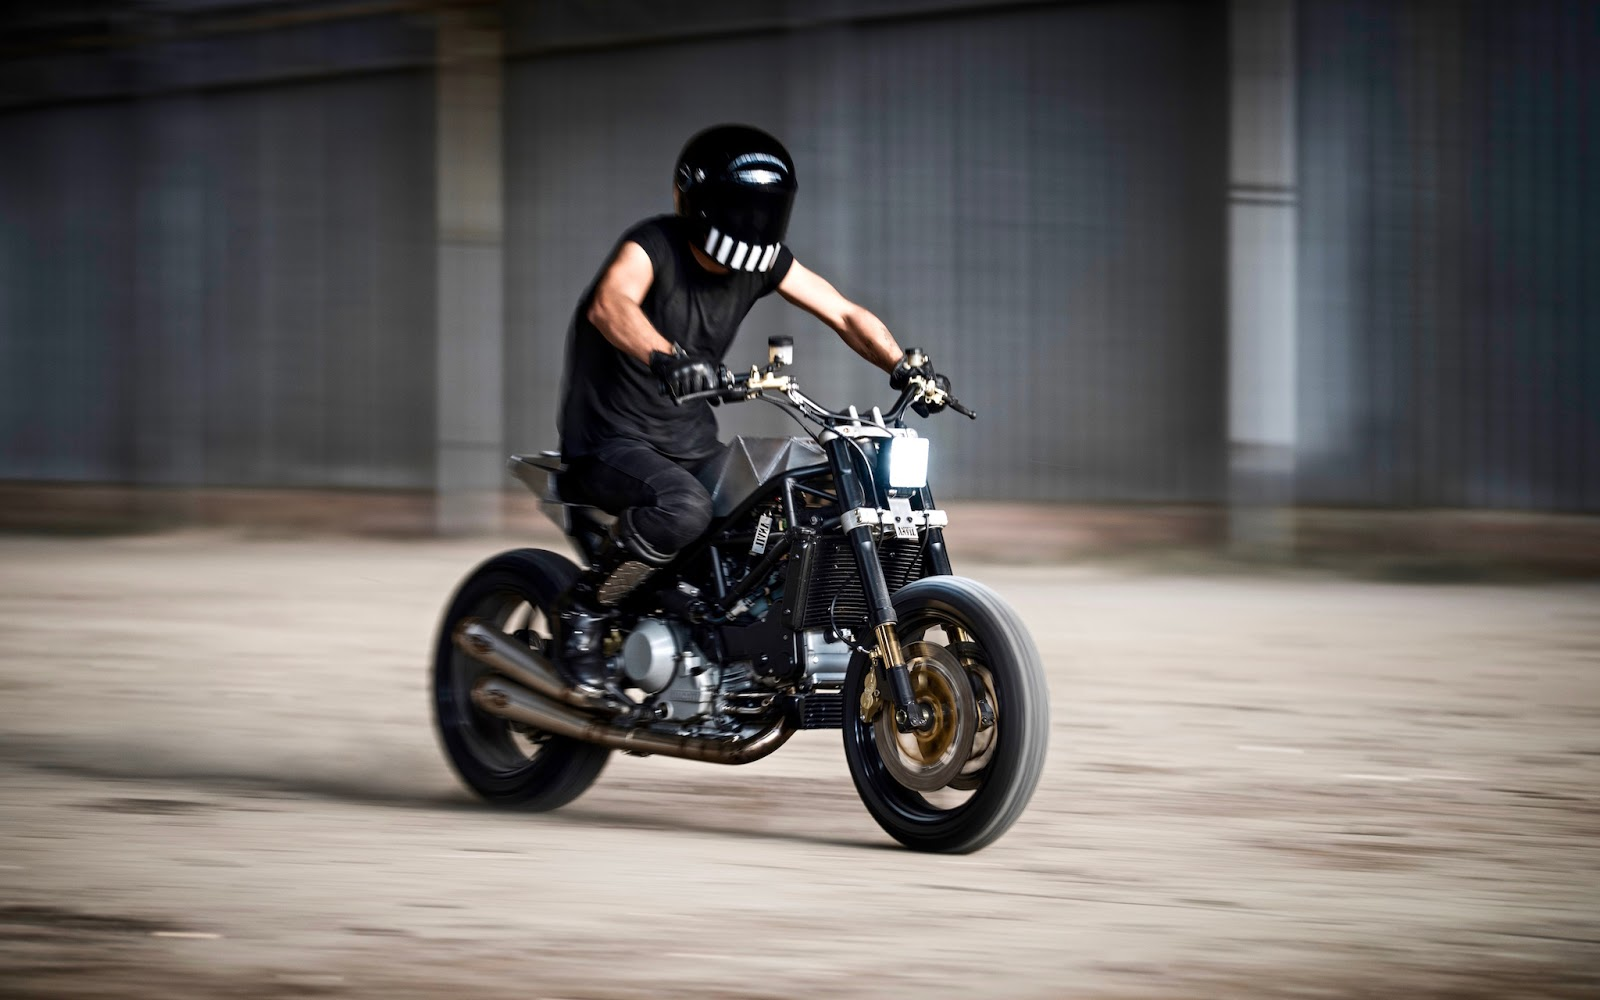 The Warthog Is An Early 2000 Ducati Monster S4R Turned Into Street Tracker